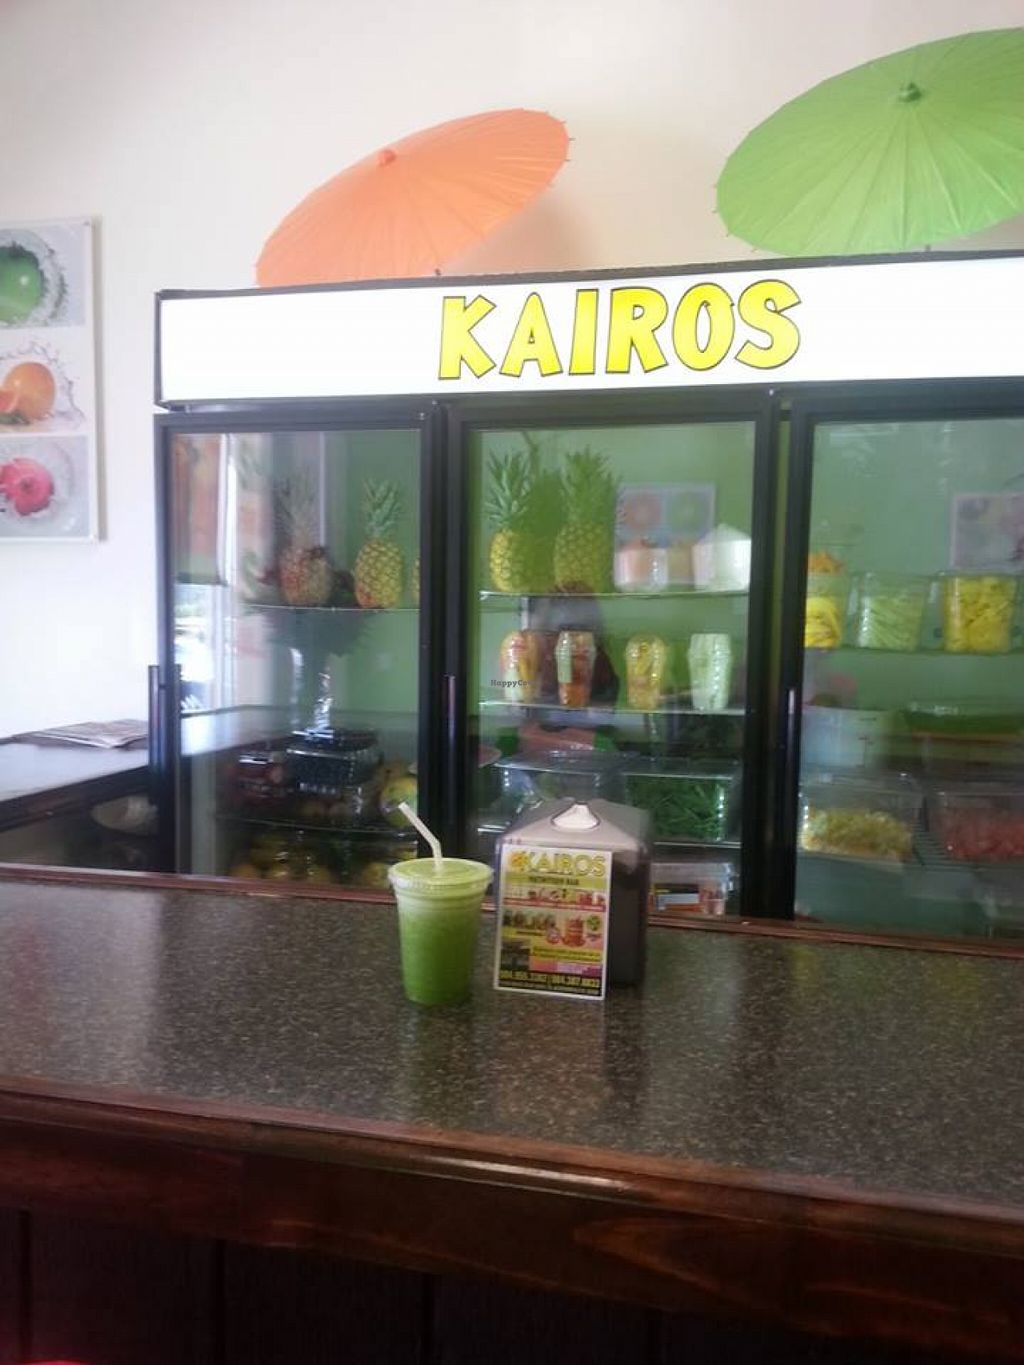 """Photo of Kairos Nutrition Bar  by <a href=""""/members/profile/community"""">community</a> <br/>Kairos Nutrition Bar <br/> August 11, 2015  - <a href='/contact/abuse/image/61469/113121'>Report</a>"""